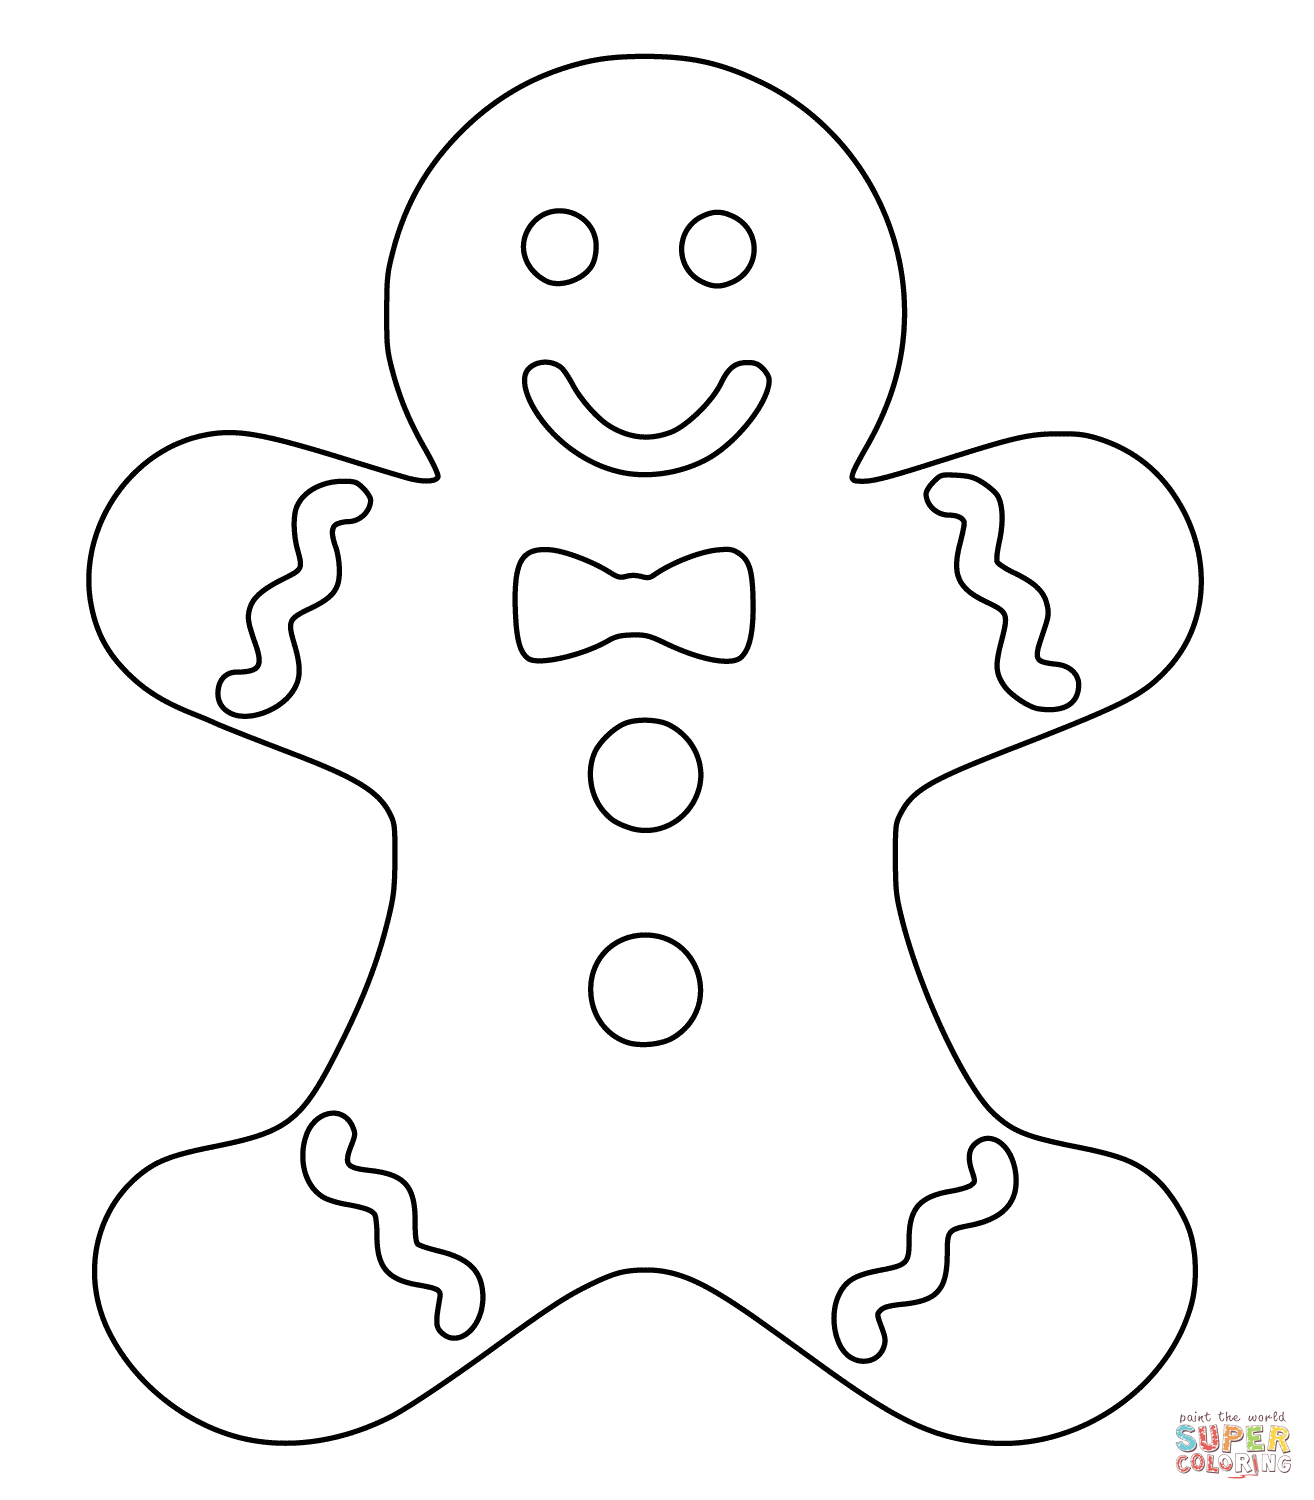 outline of gingerbread man in case you need a gingerbread man gingerbread crafts outline gingerbread of man